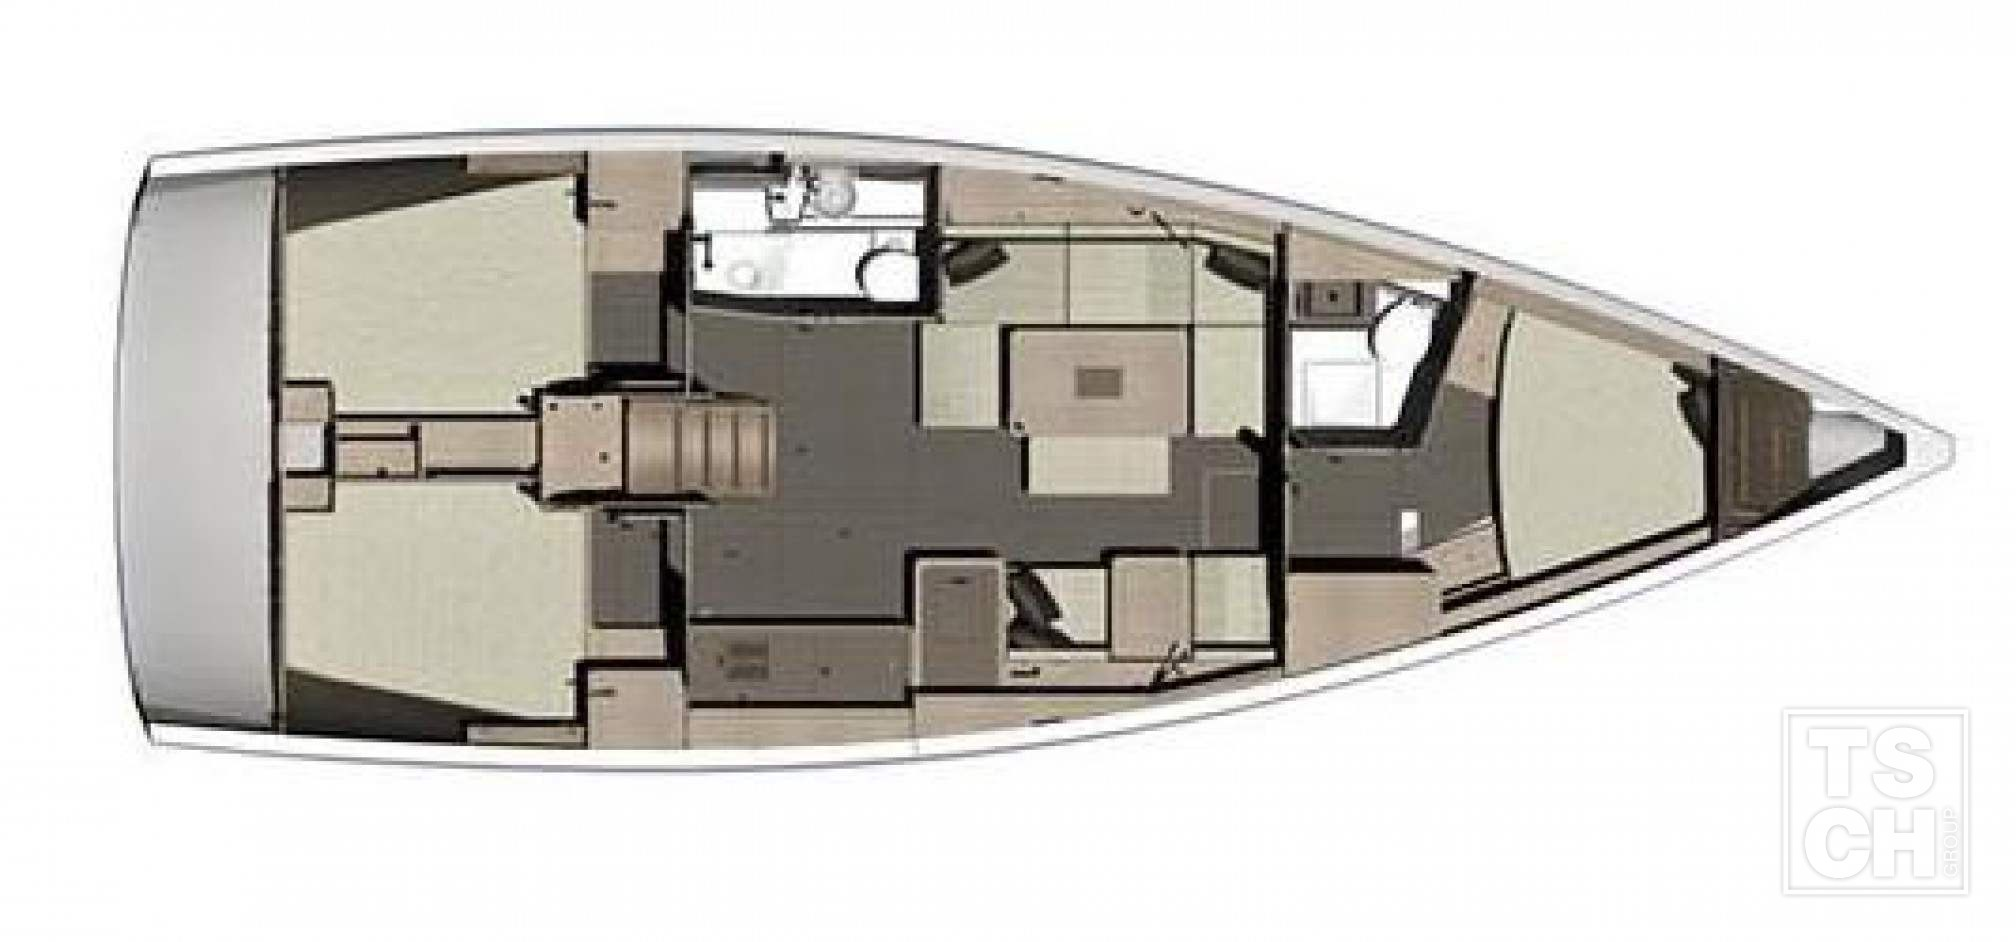 Dufour 412 GL rent charter layout